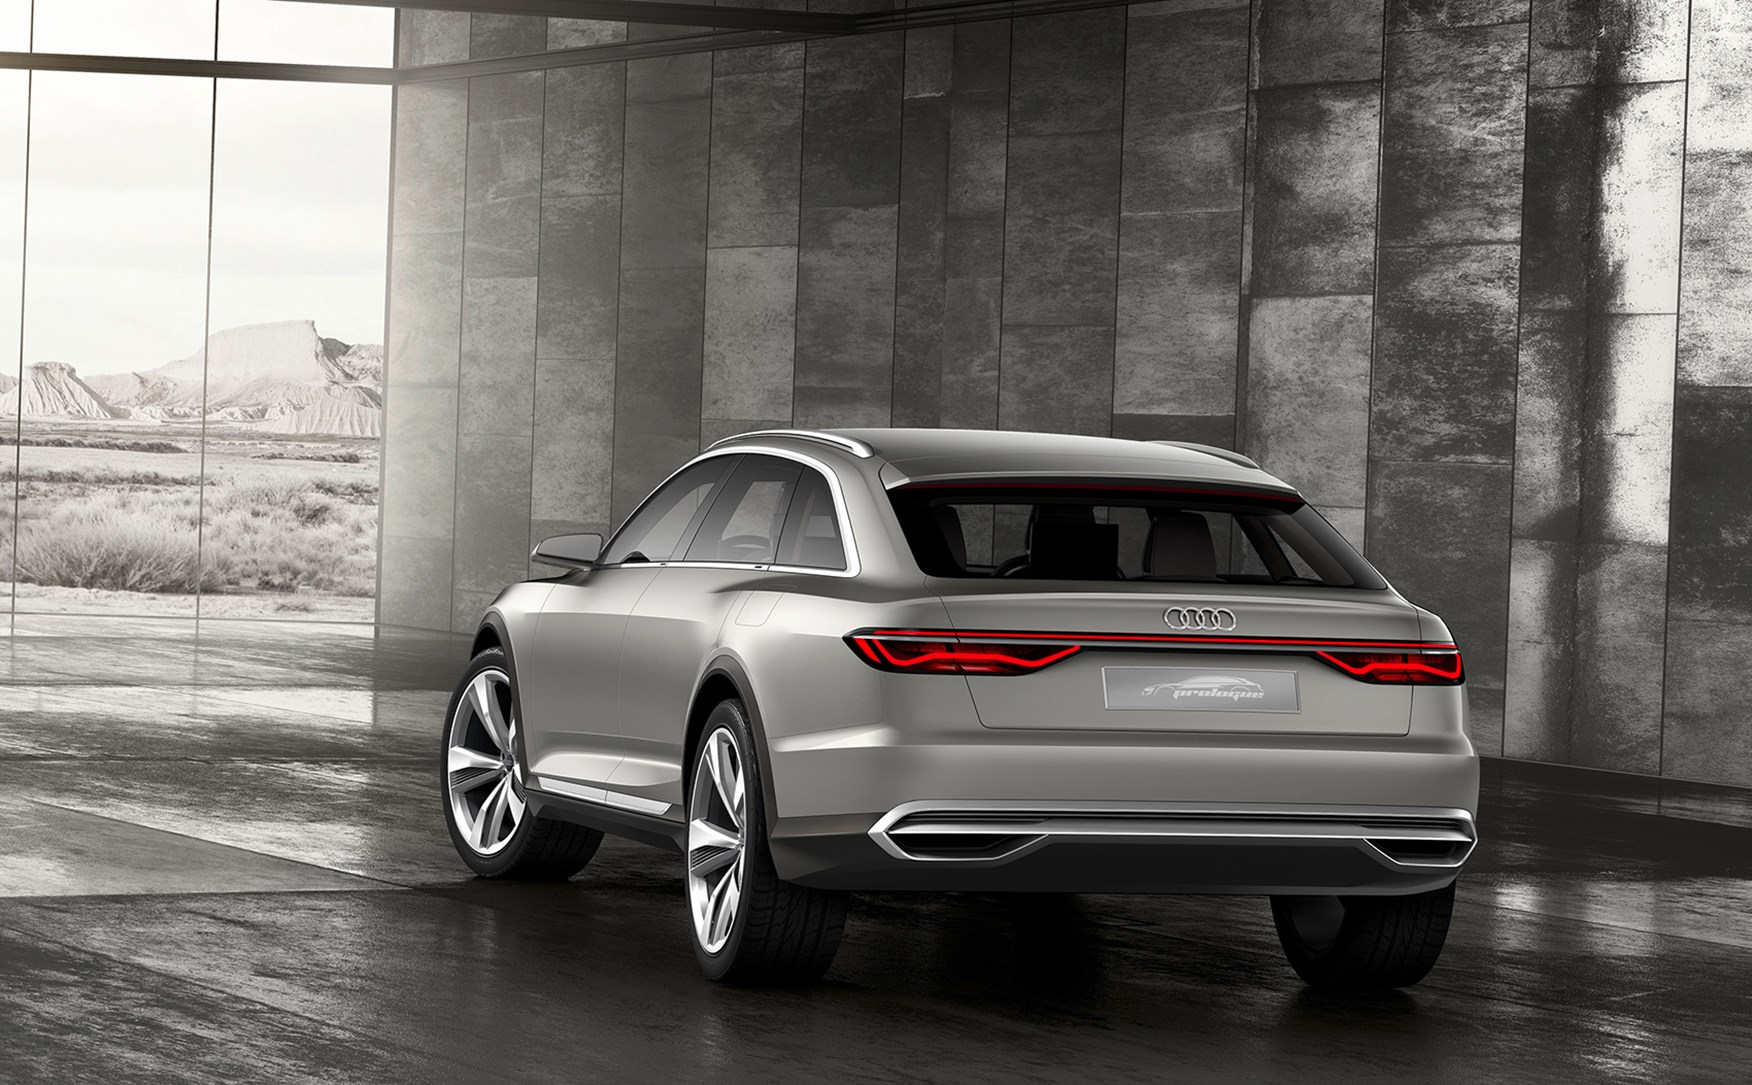 Audi Prologue Allroad Concept Car Veers Off Road At Auto Shanghai 2015 By Car Magazine